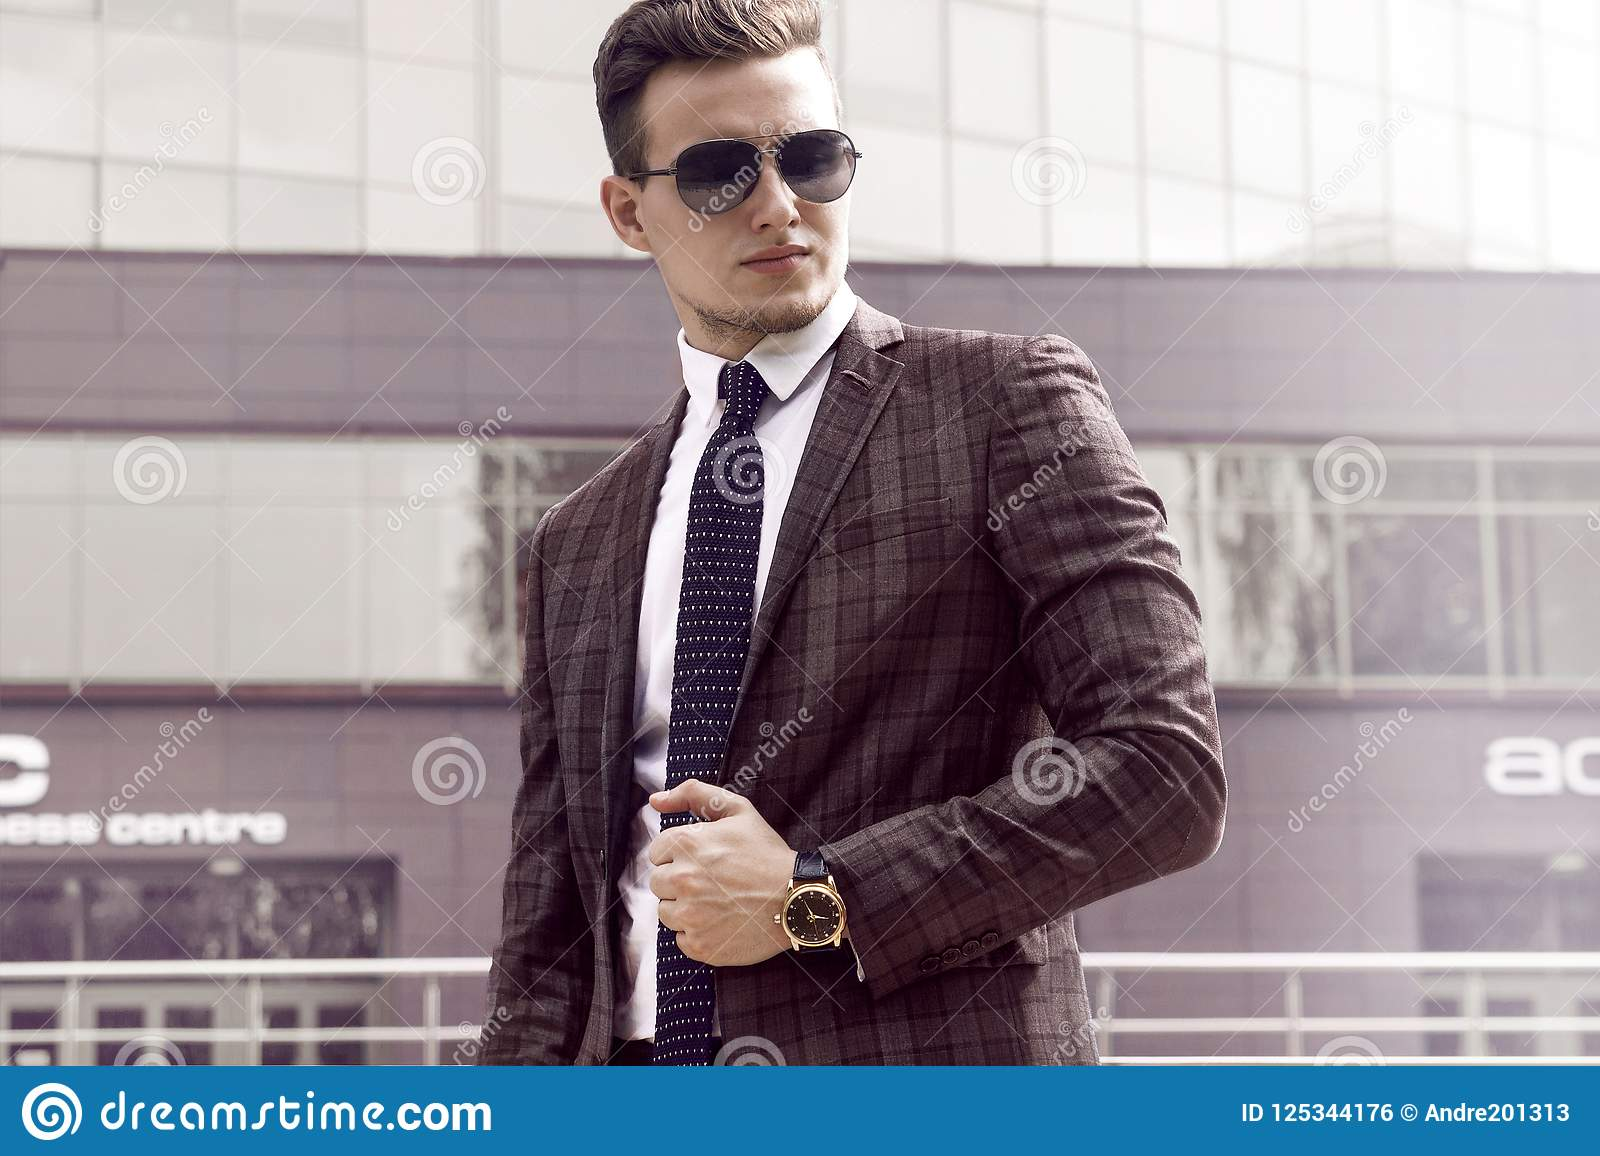 Man businessman in sunglasses jacket and tie against the background of urban landscape